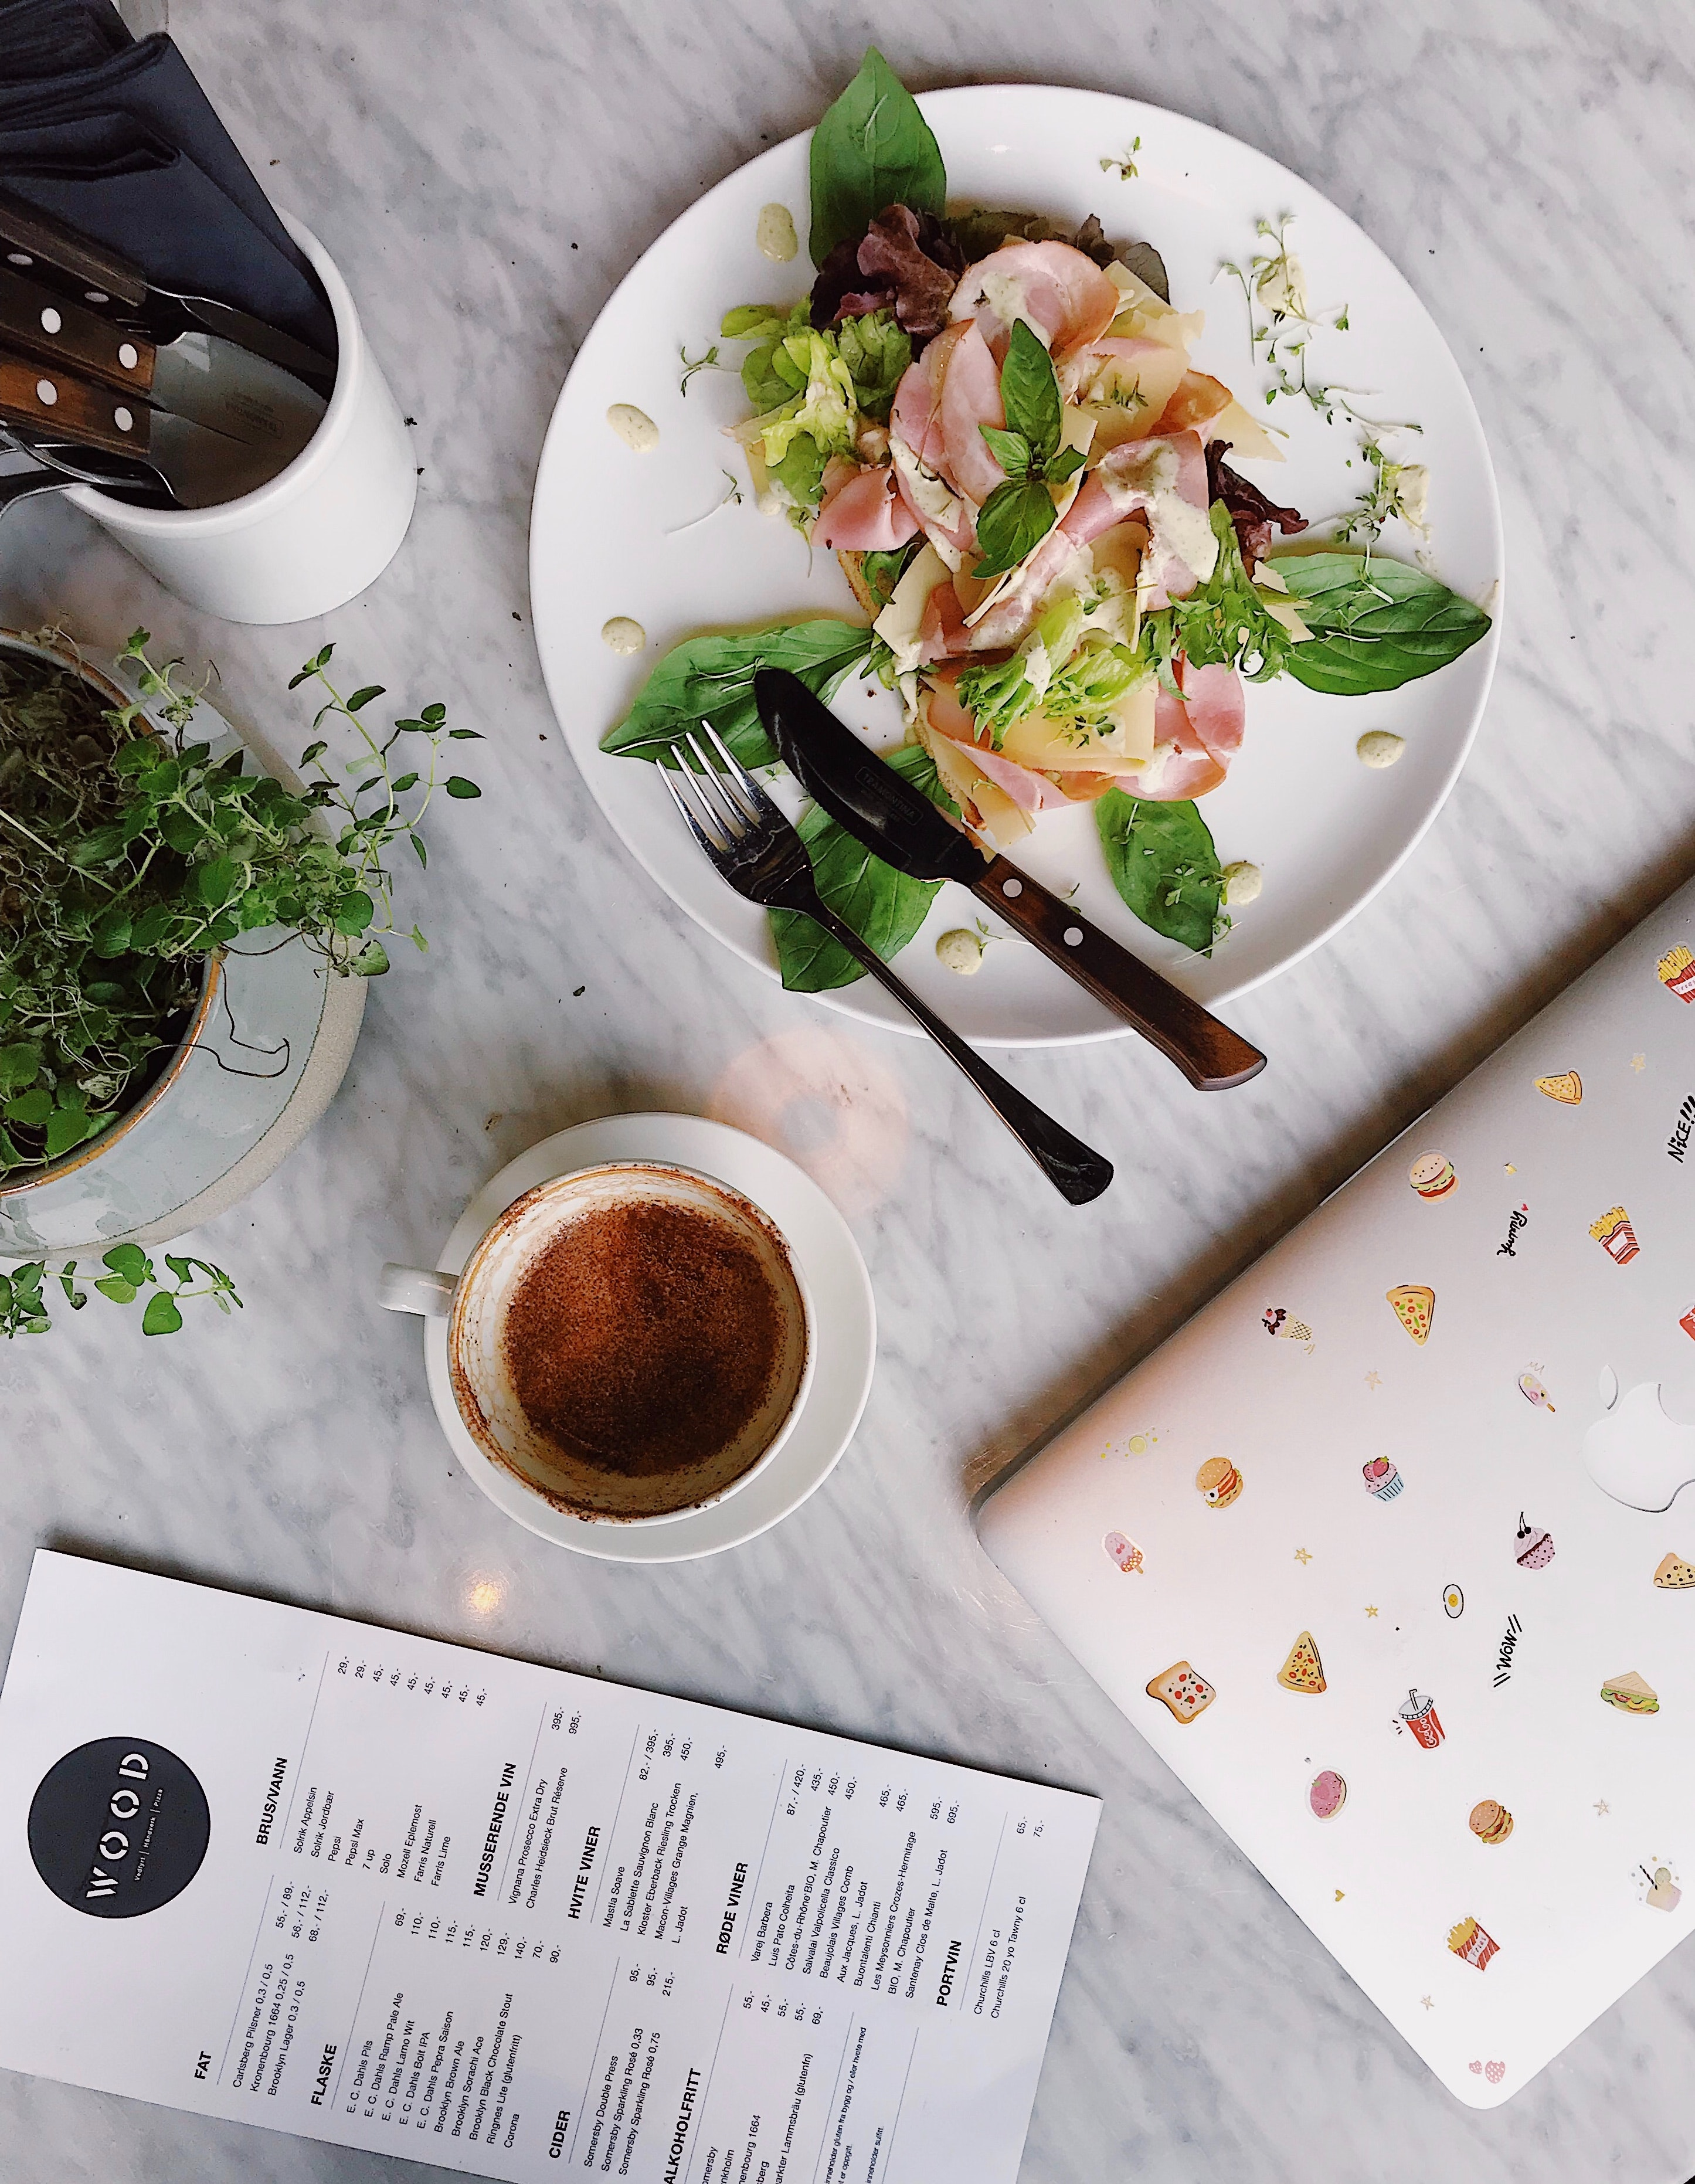 How to Make a Brochure for Your Restaurant on Google Docs